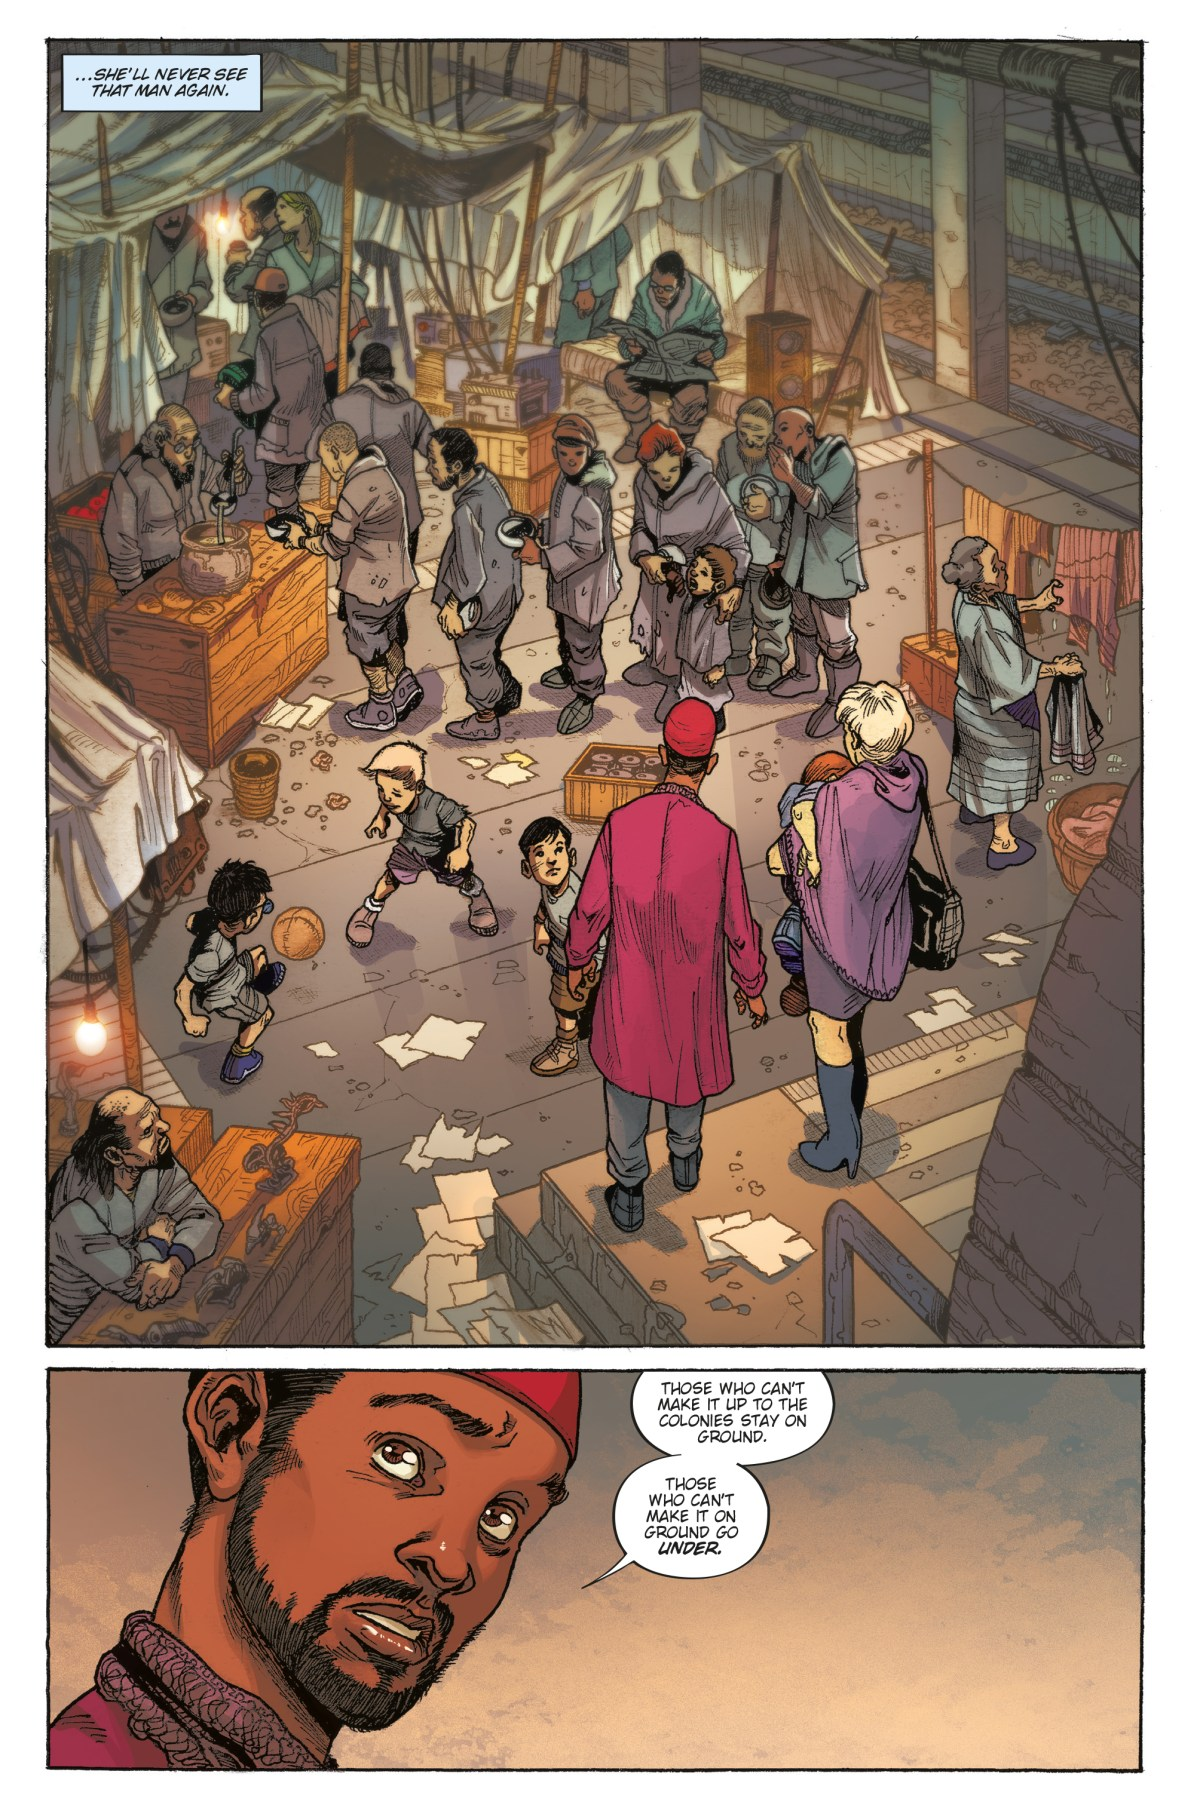 Isobel and Cleo see a camp for the homeless in Blade Runner 2019 #2.